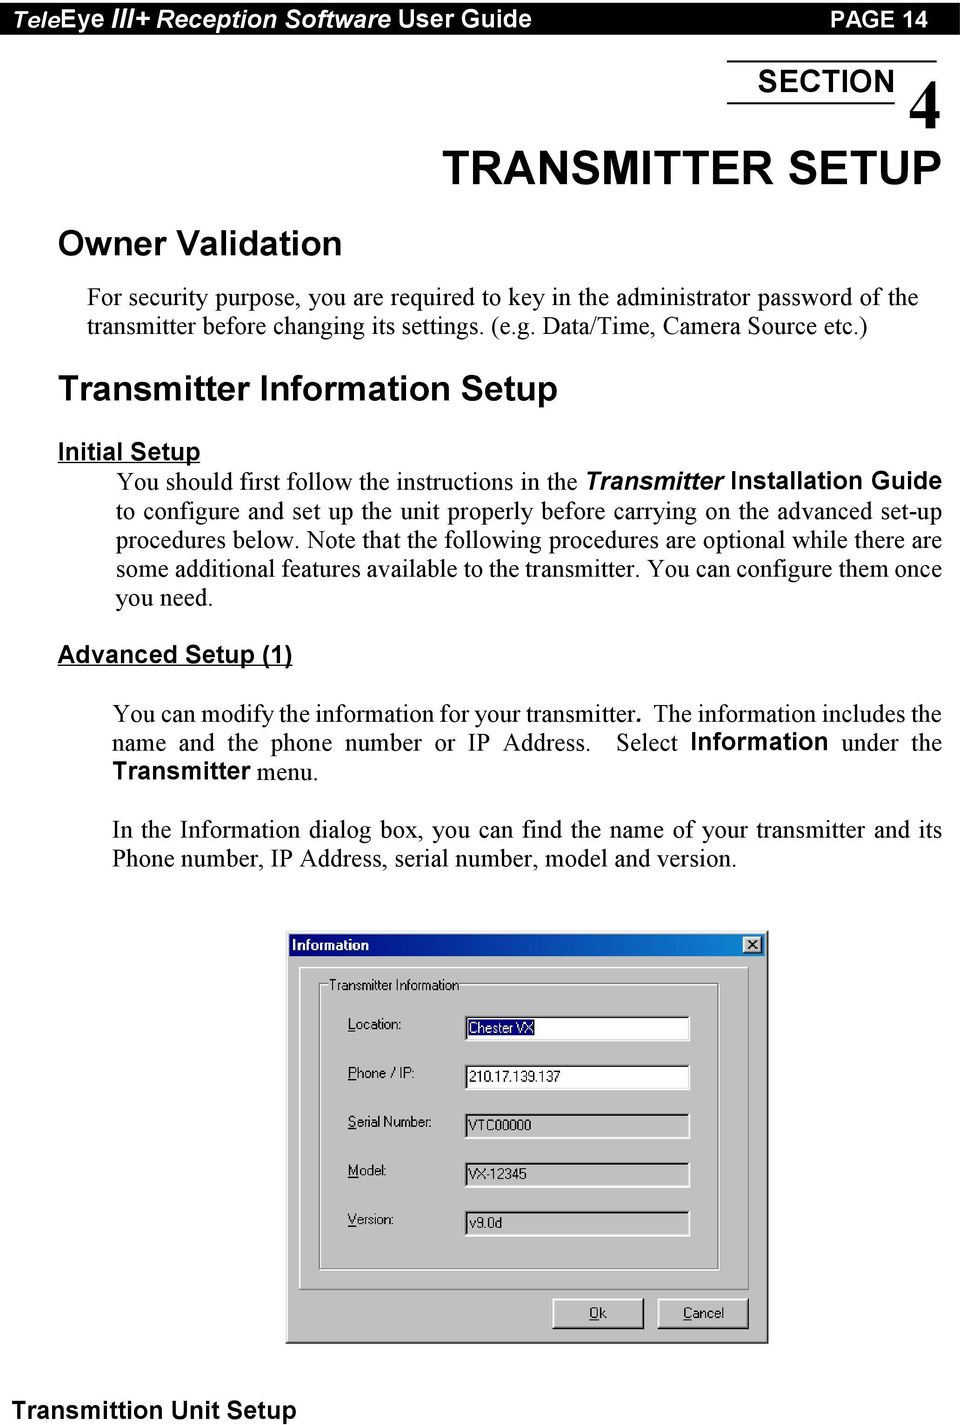 ) Transmitter Information Setup Initial Setup You should first follow the instructions in the Transmitter Installation Guide to configure and set up the unit properly before carrying on the advanced